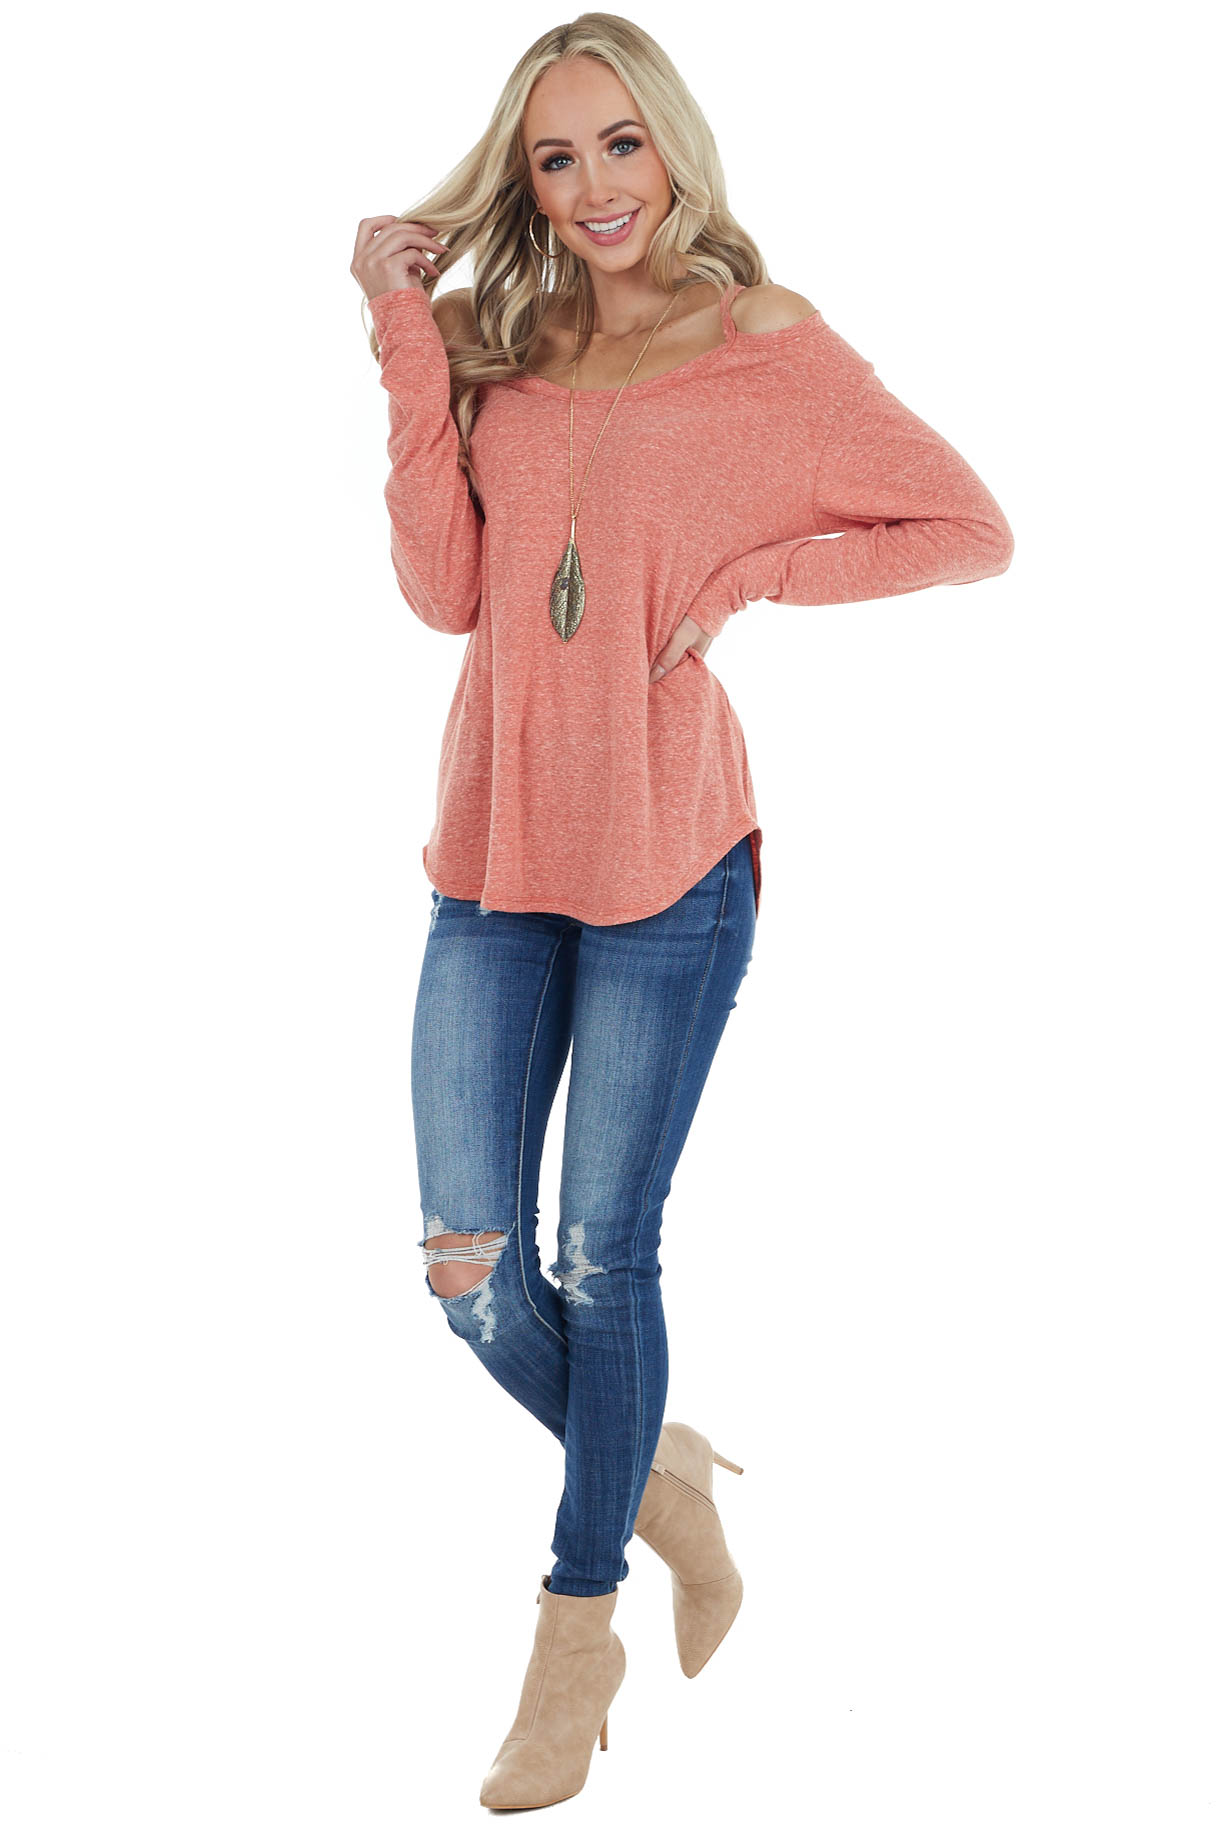 Heather Coral Shoulder Cutout Long Sleeve Stretchy Knit Top